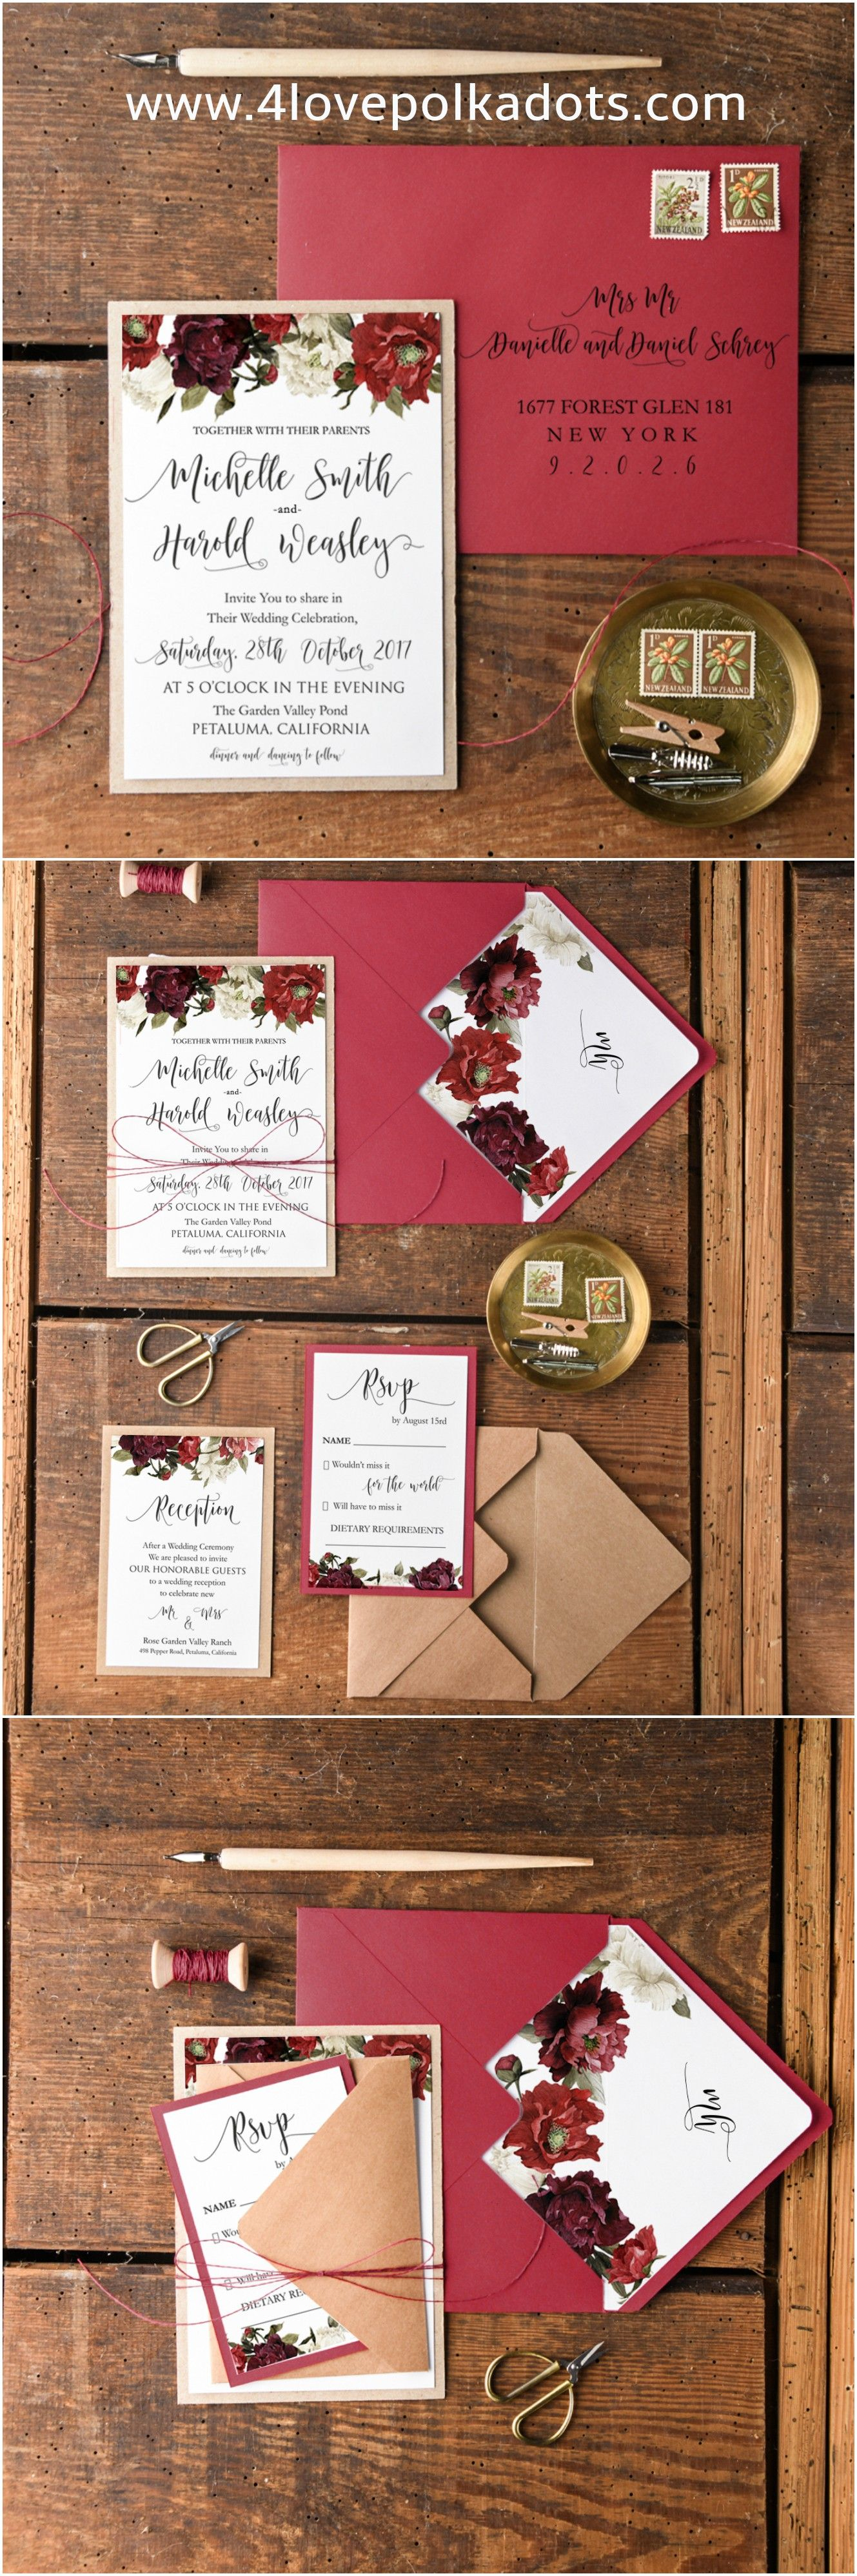 Marsala Wedding Invitations 4lovepolkadots Weddinginvitations